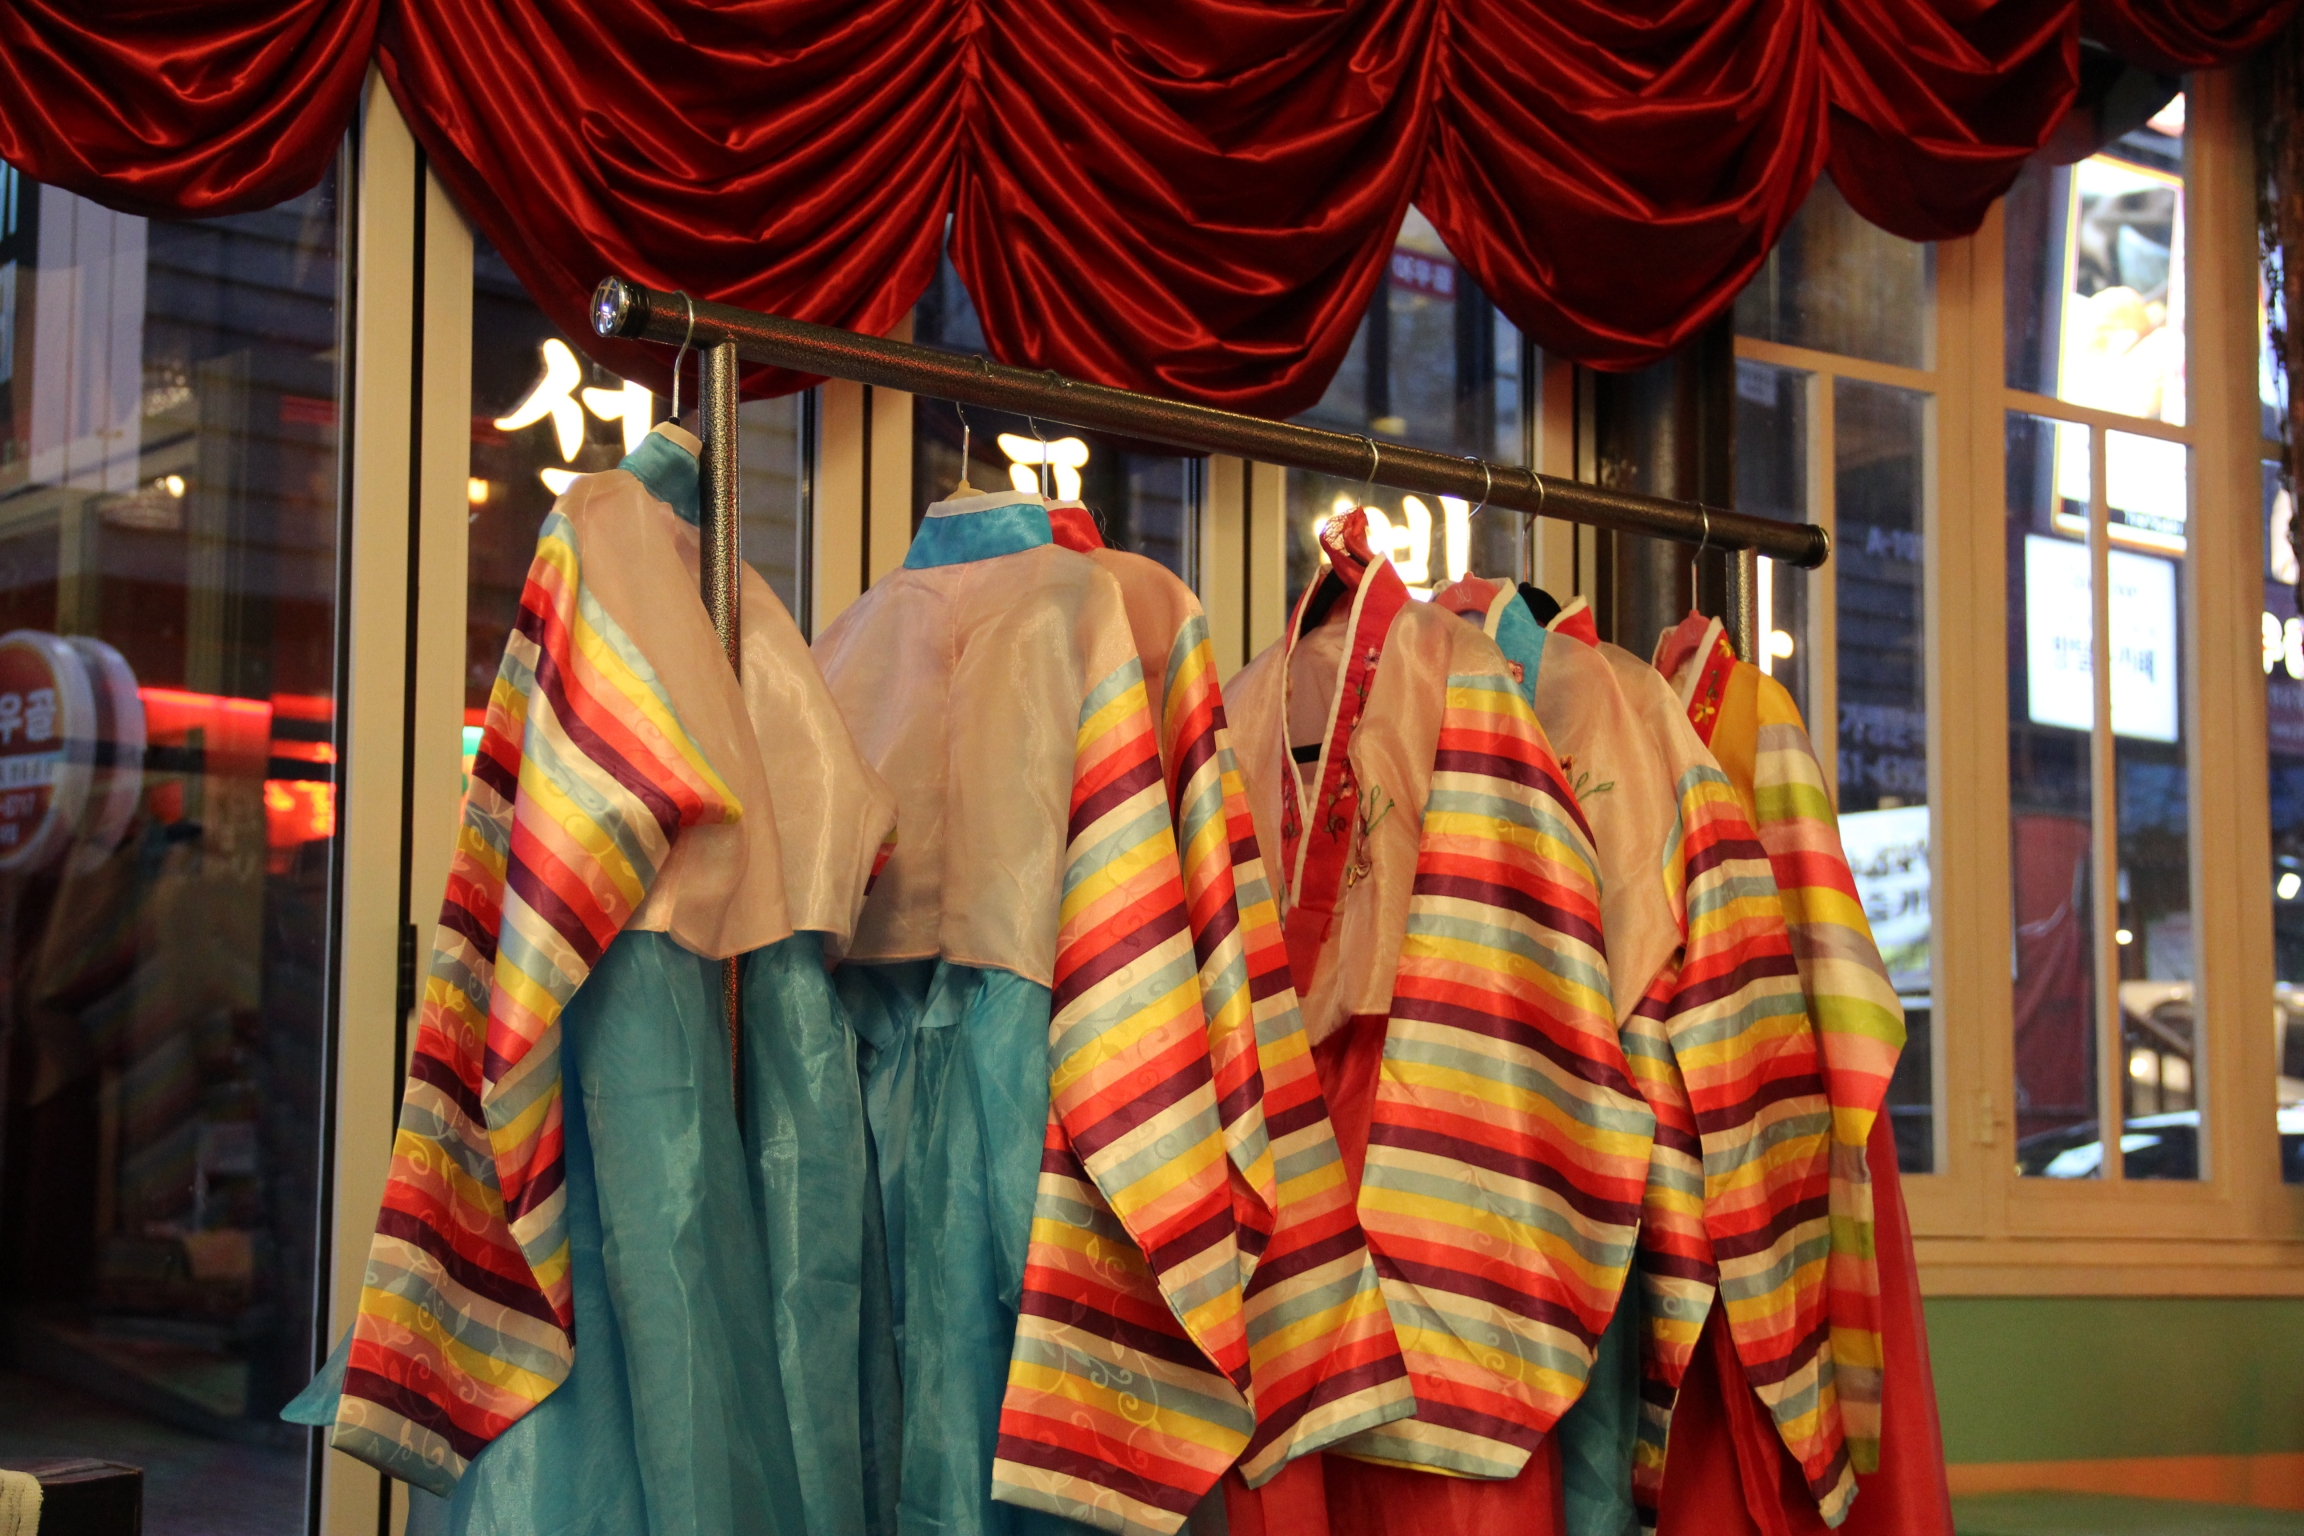 North Korean style hanbok, a traditional dress, are available for patrons to try on and take pictures in.